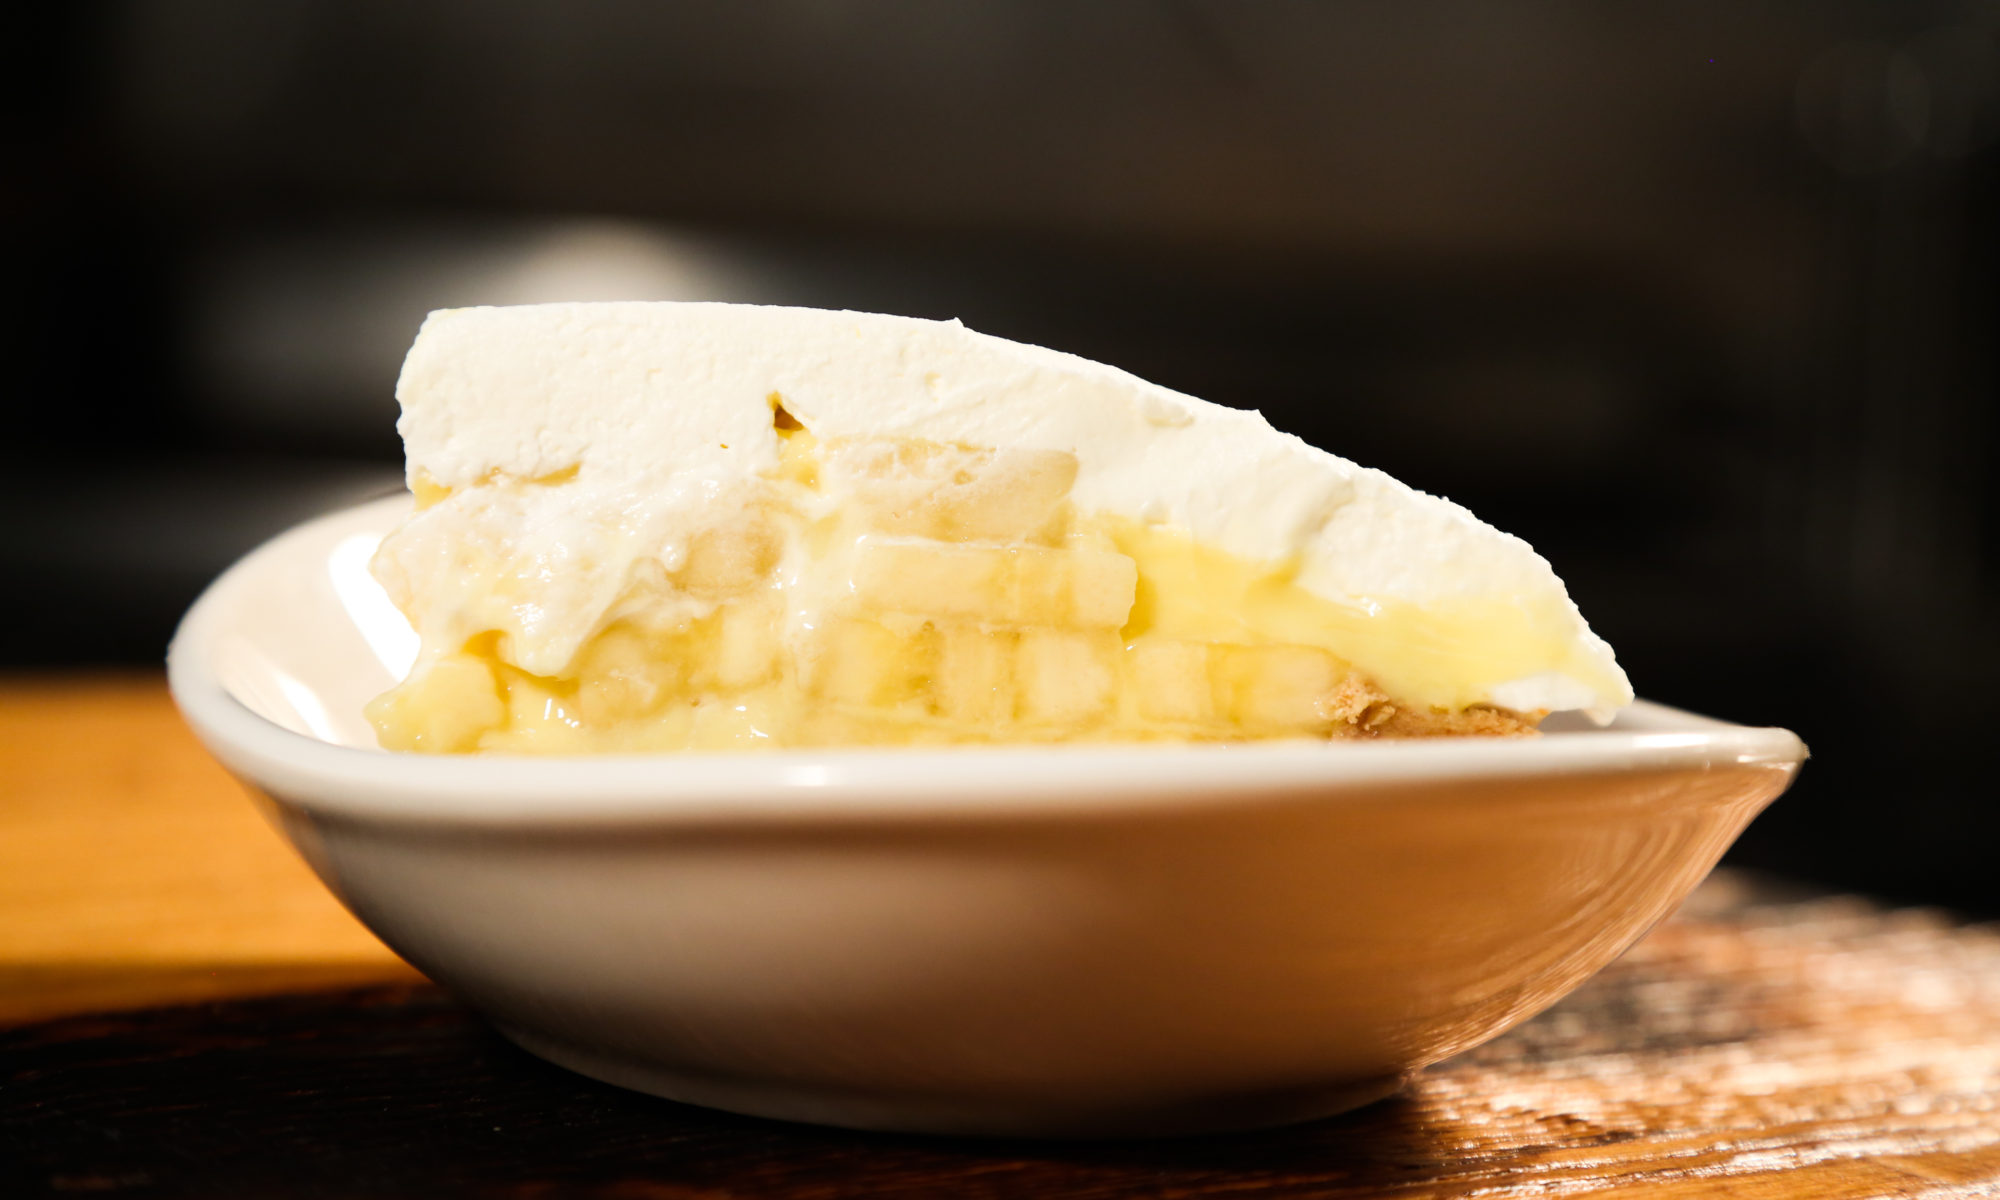 Banana Cream Pie in a dish